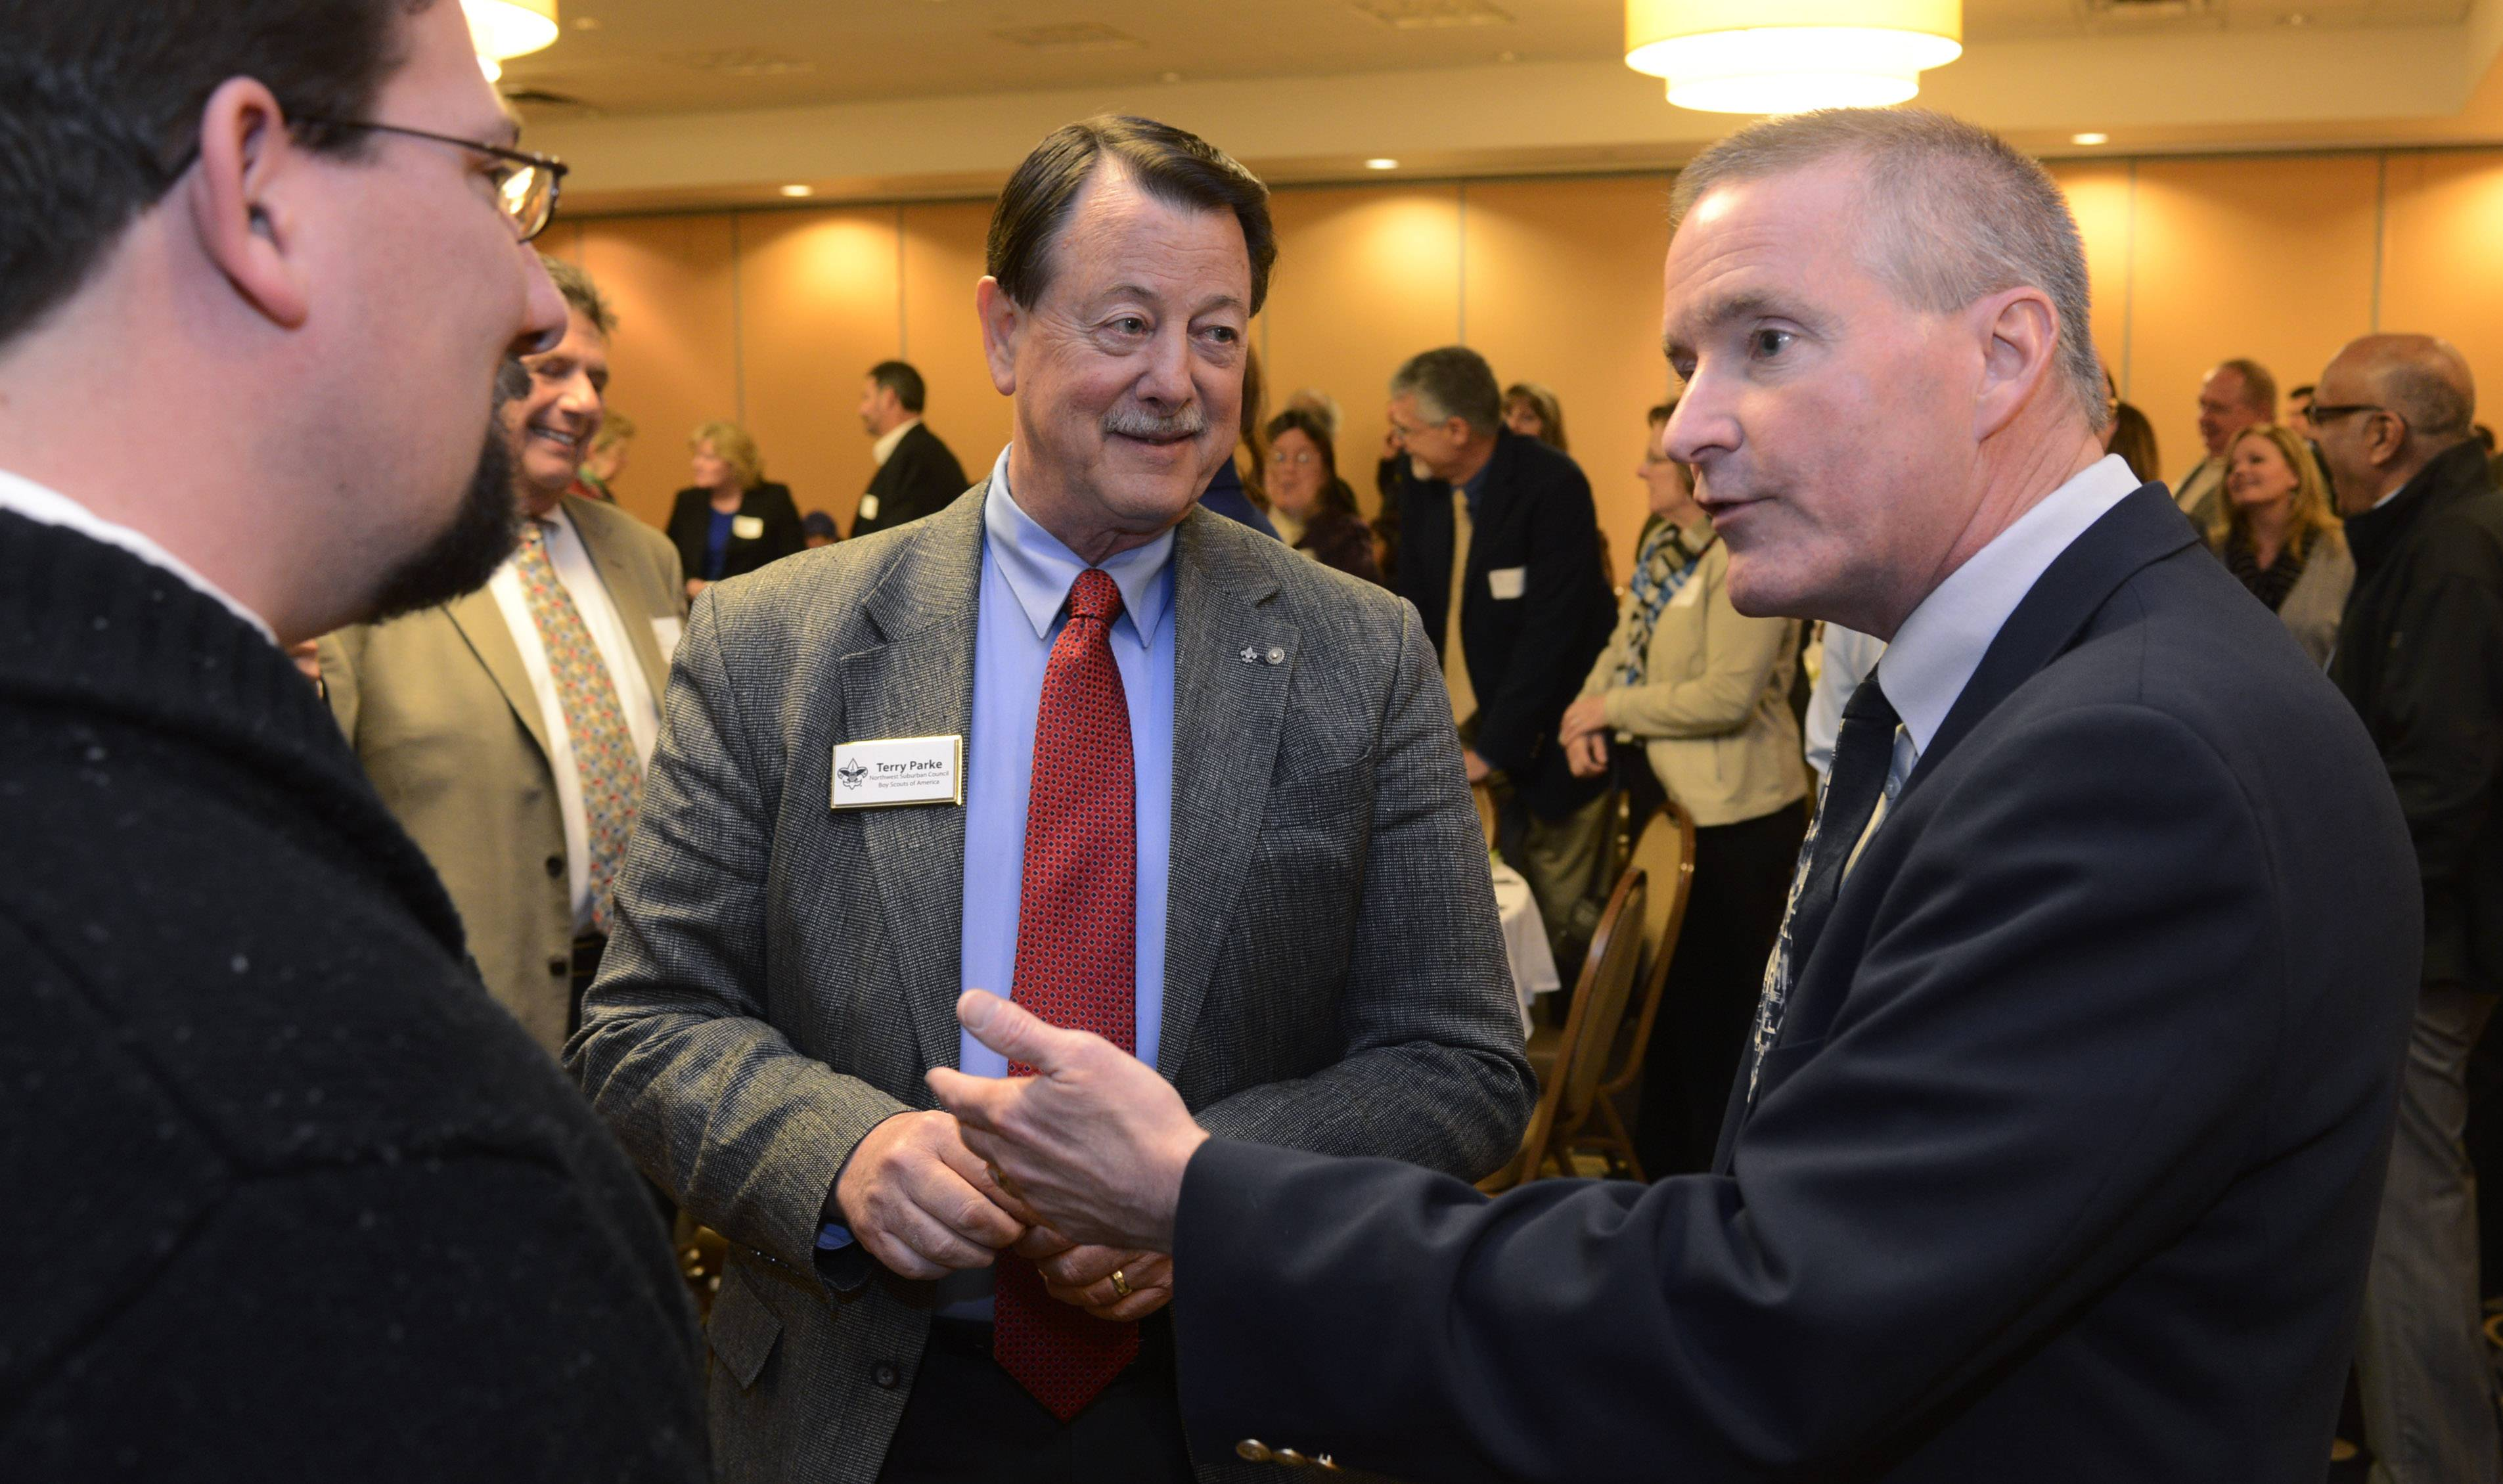 Elk Grove Village Mayor Craig Johnson, right, chats with Kevin Egan and Terry Parke of the Boy Scouts of America Northwest Suburban Council prior to delivering his state of the village address Thursday at an Elk Grove Chamber of Commerce luncheon.